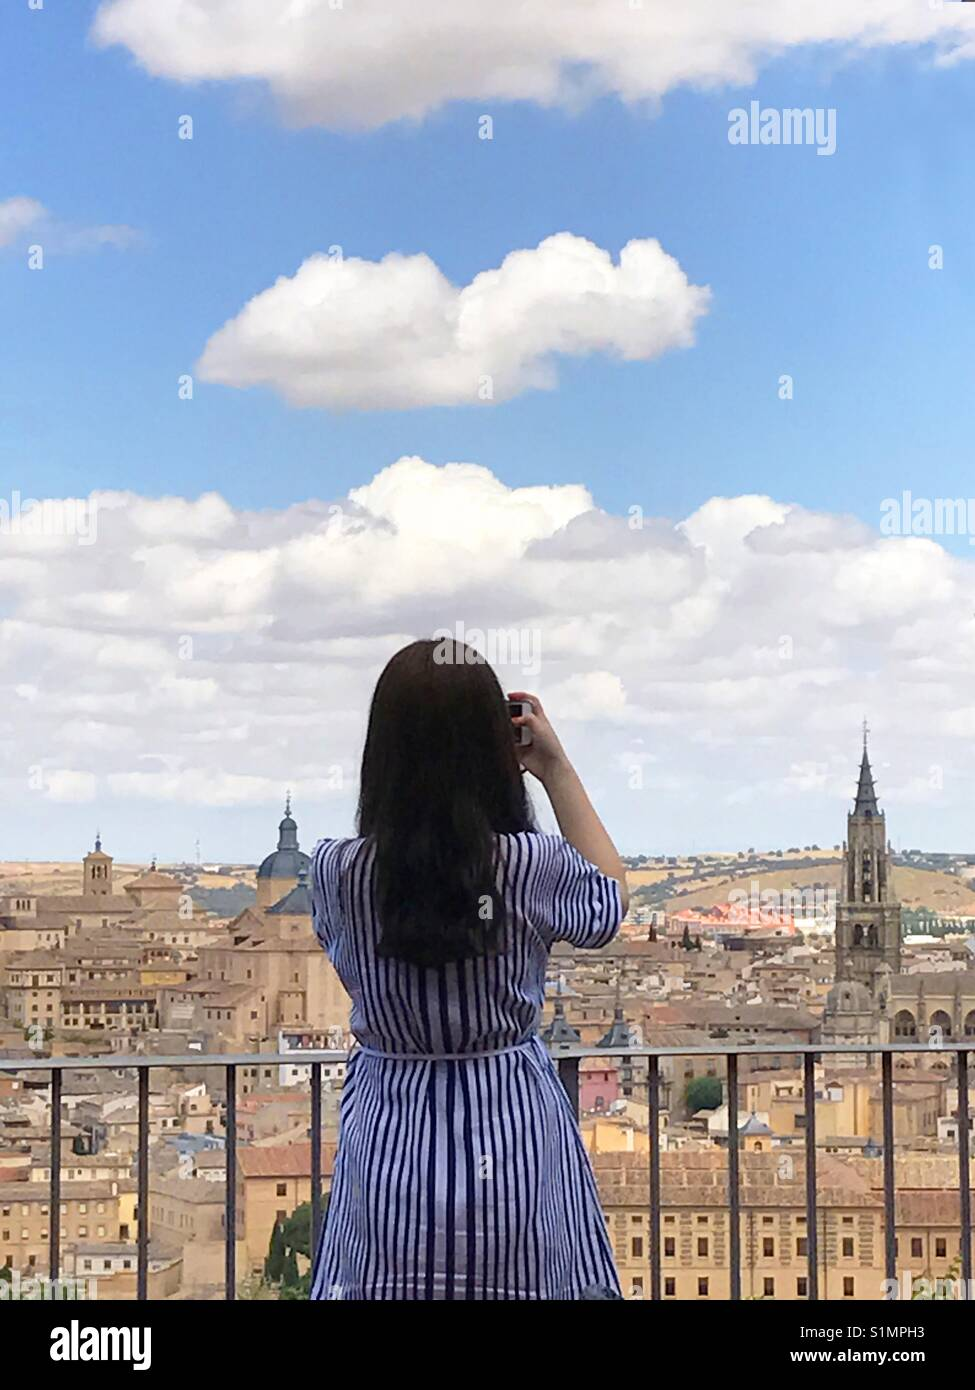 Woman taking photos at the viewpoint over the city. Toledo. Spain. - Stock Image